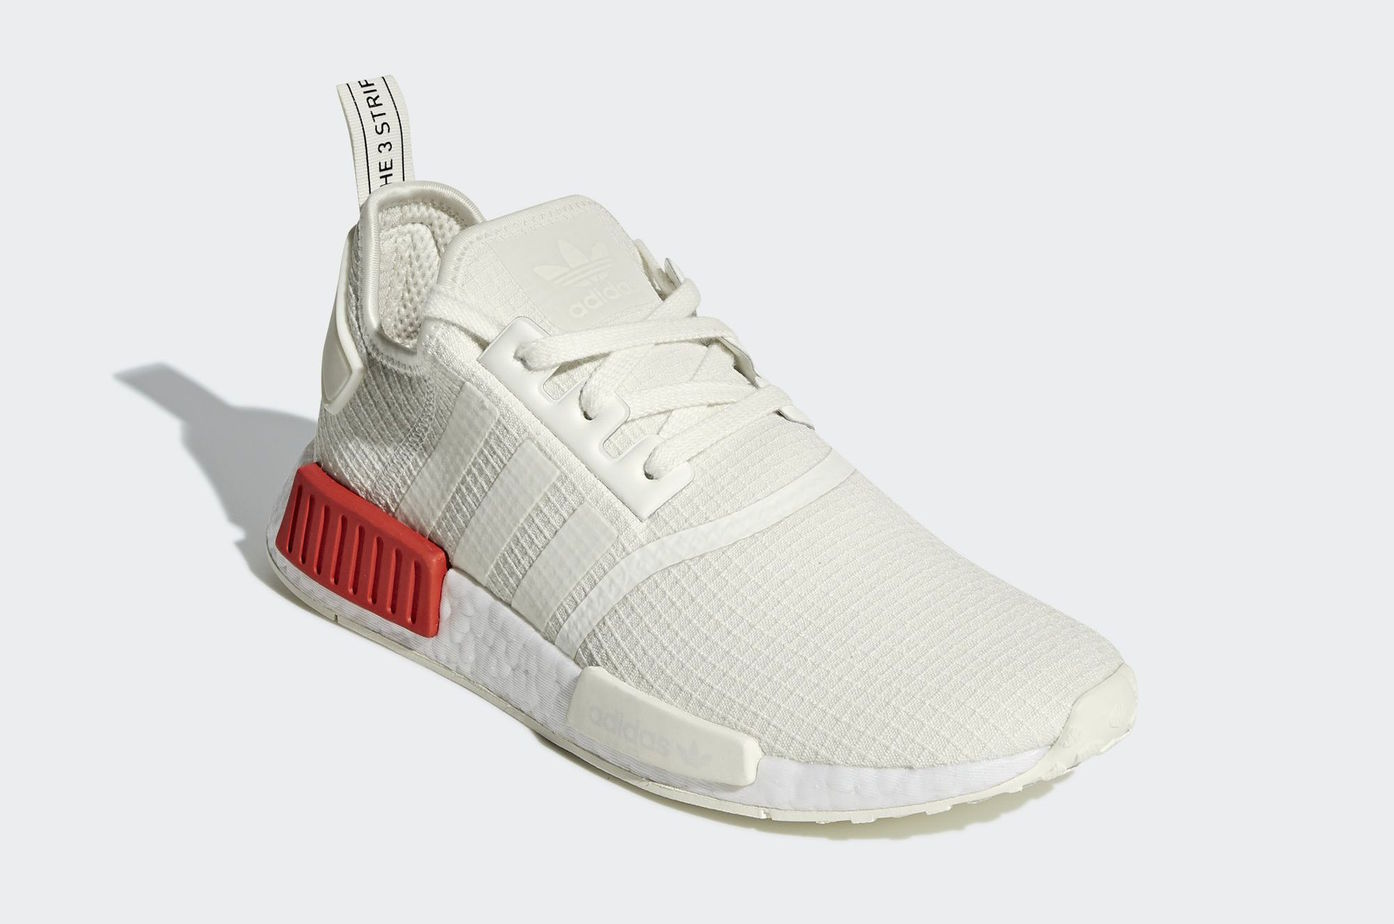 newest 72527 4608e ... store adidas nmdr1 release date september 6th 2018. price 130. color  cloud white cloud